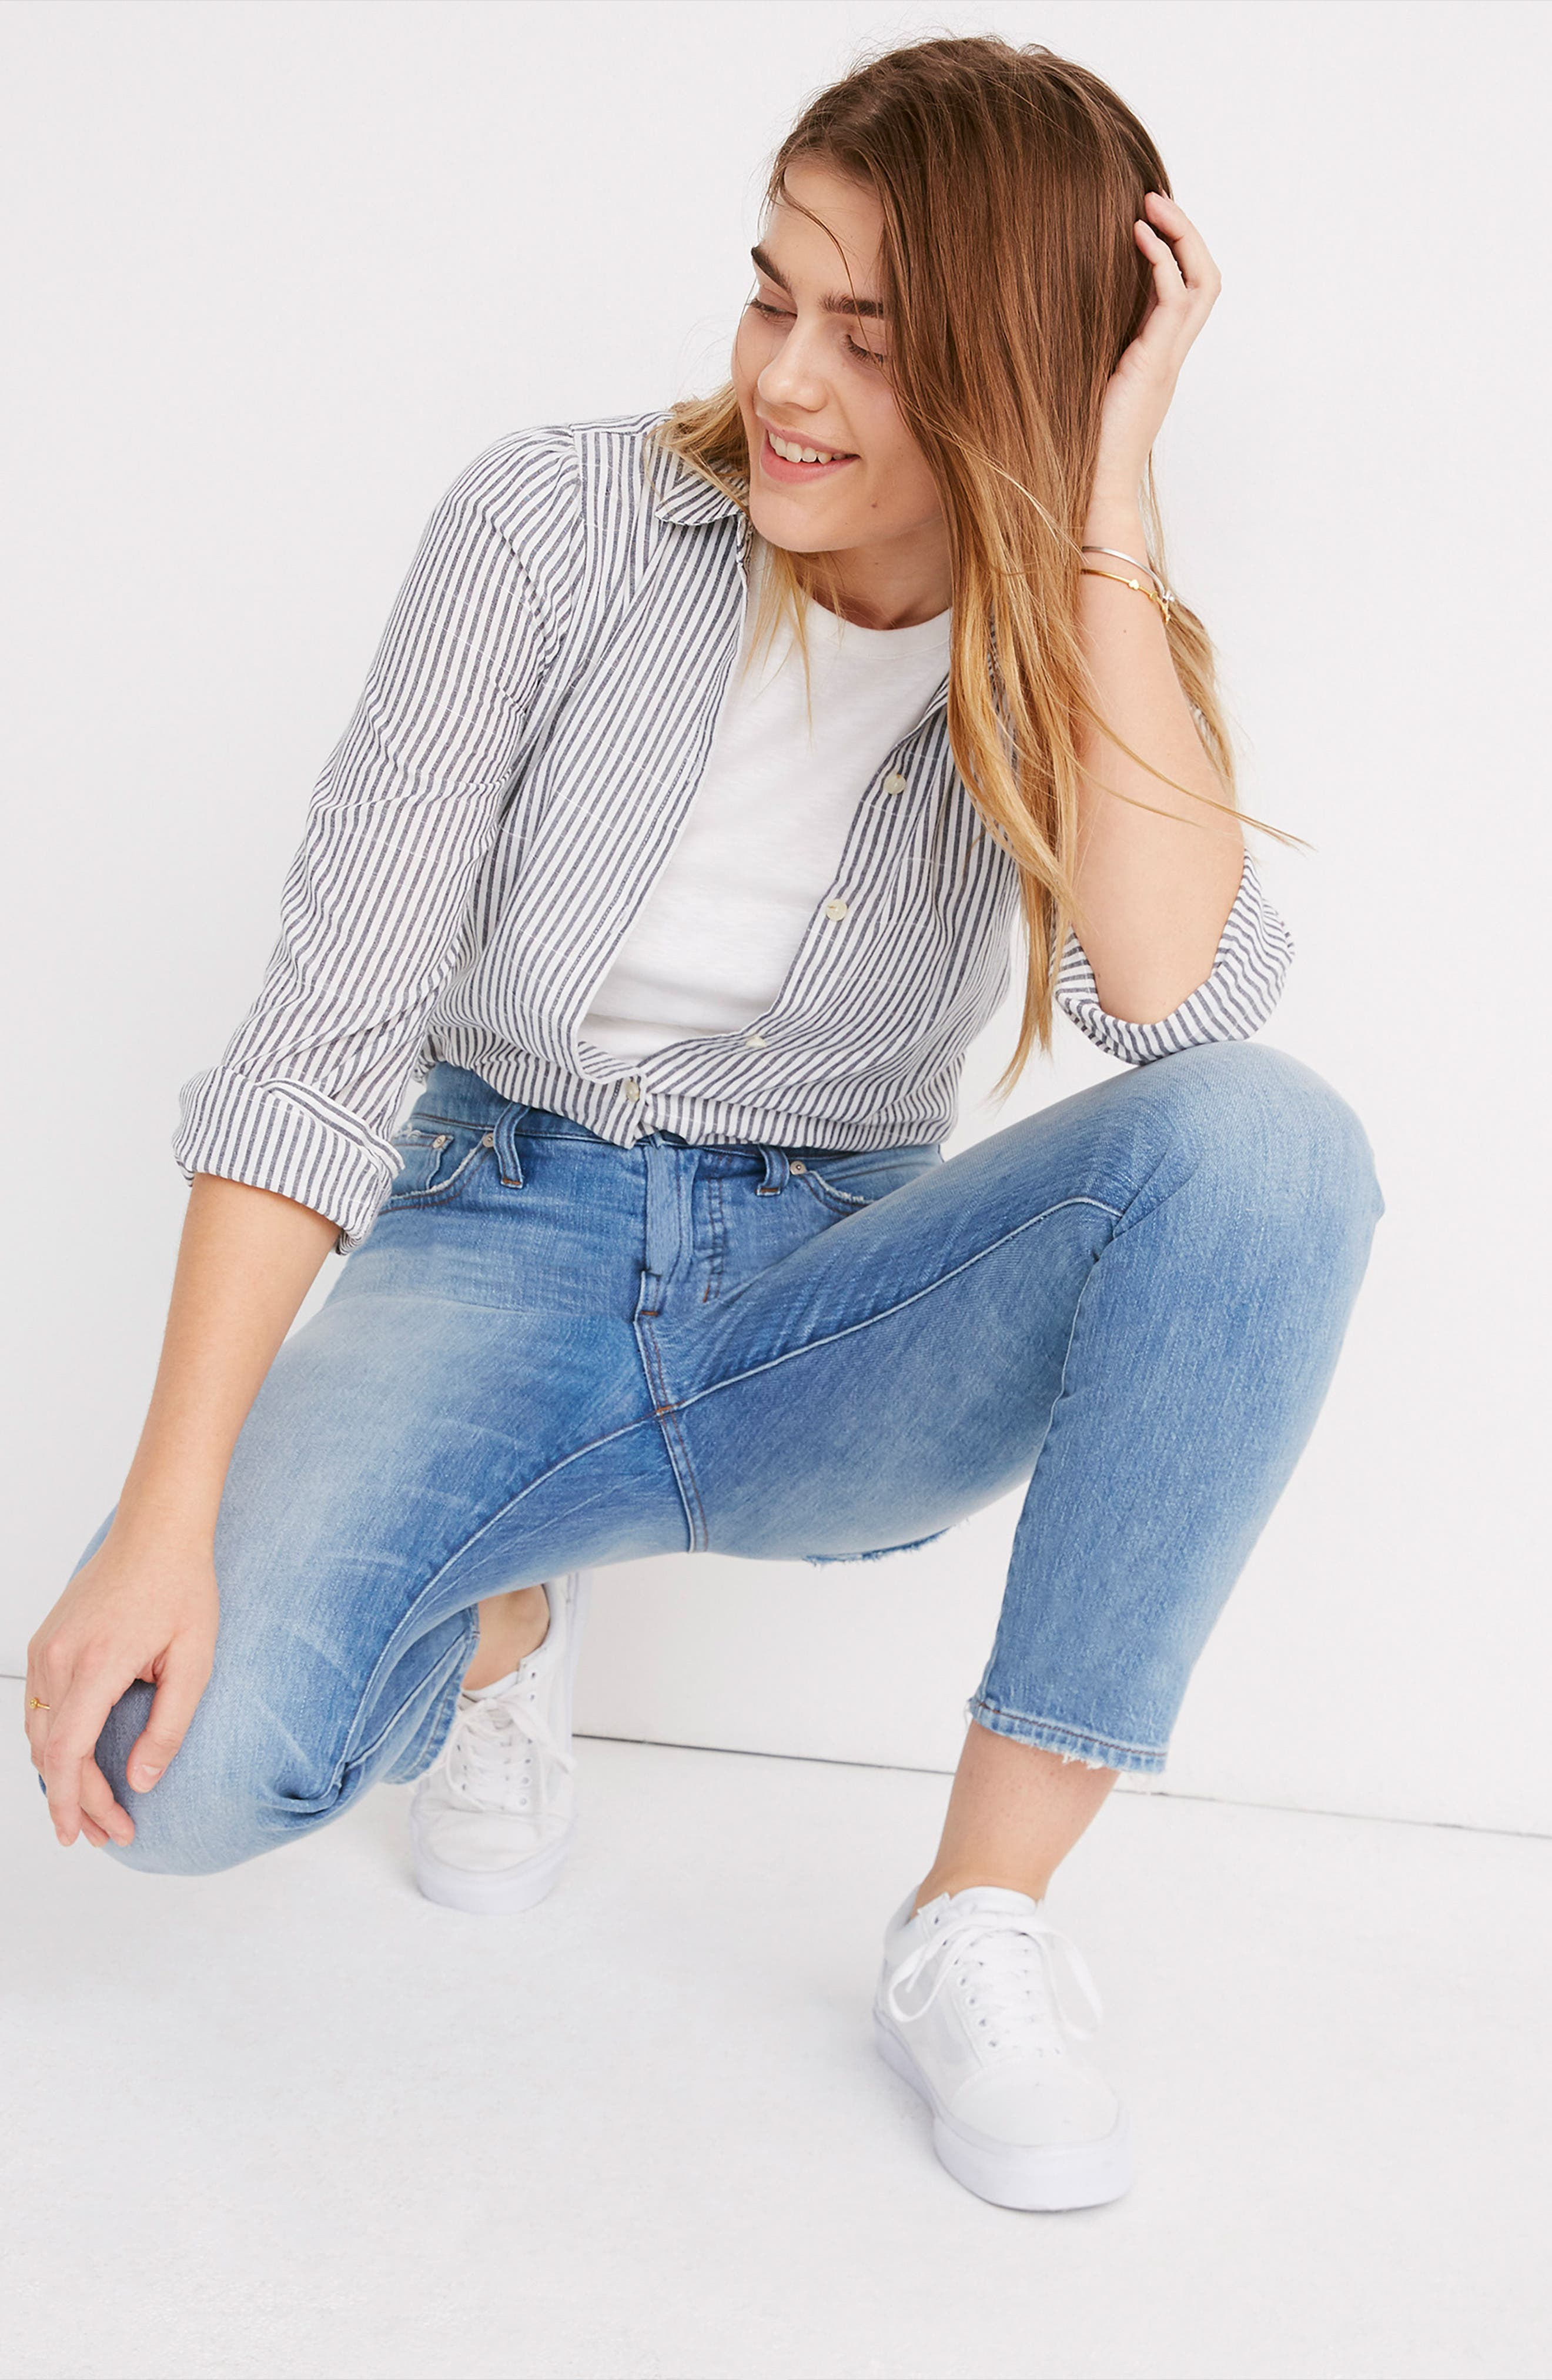 MADEWELL, The Perfect Vintage Heart Patch High Waist Jeans, Alternate thumbnail 7, color, ATWATER WASH